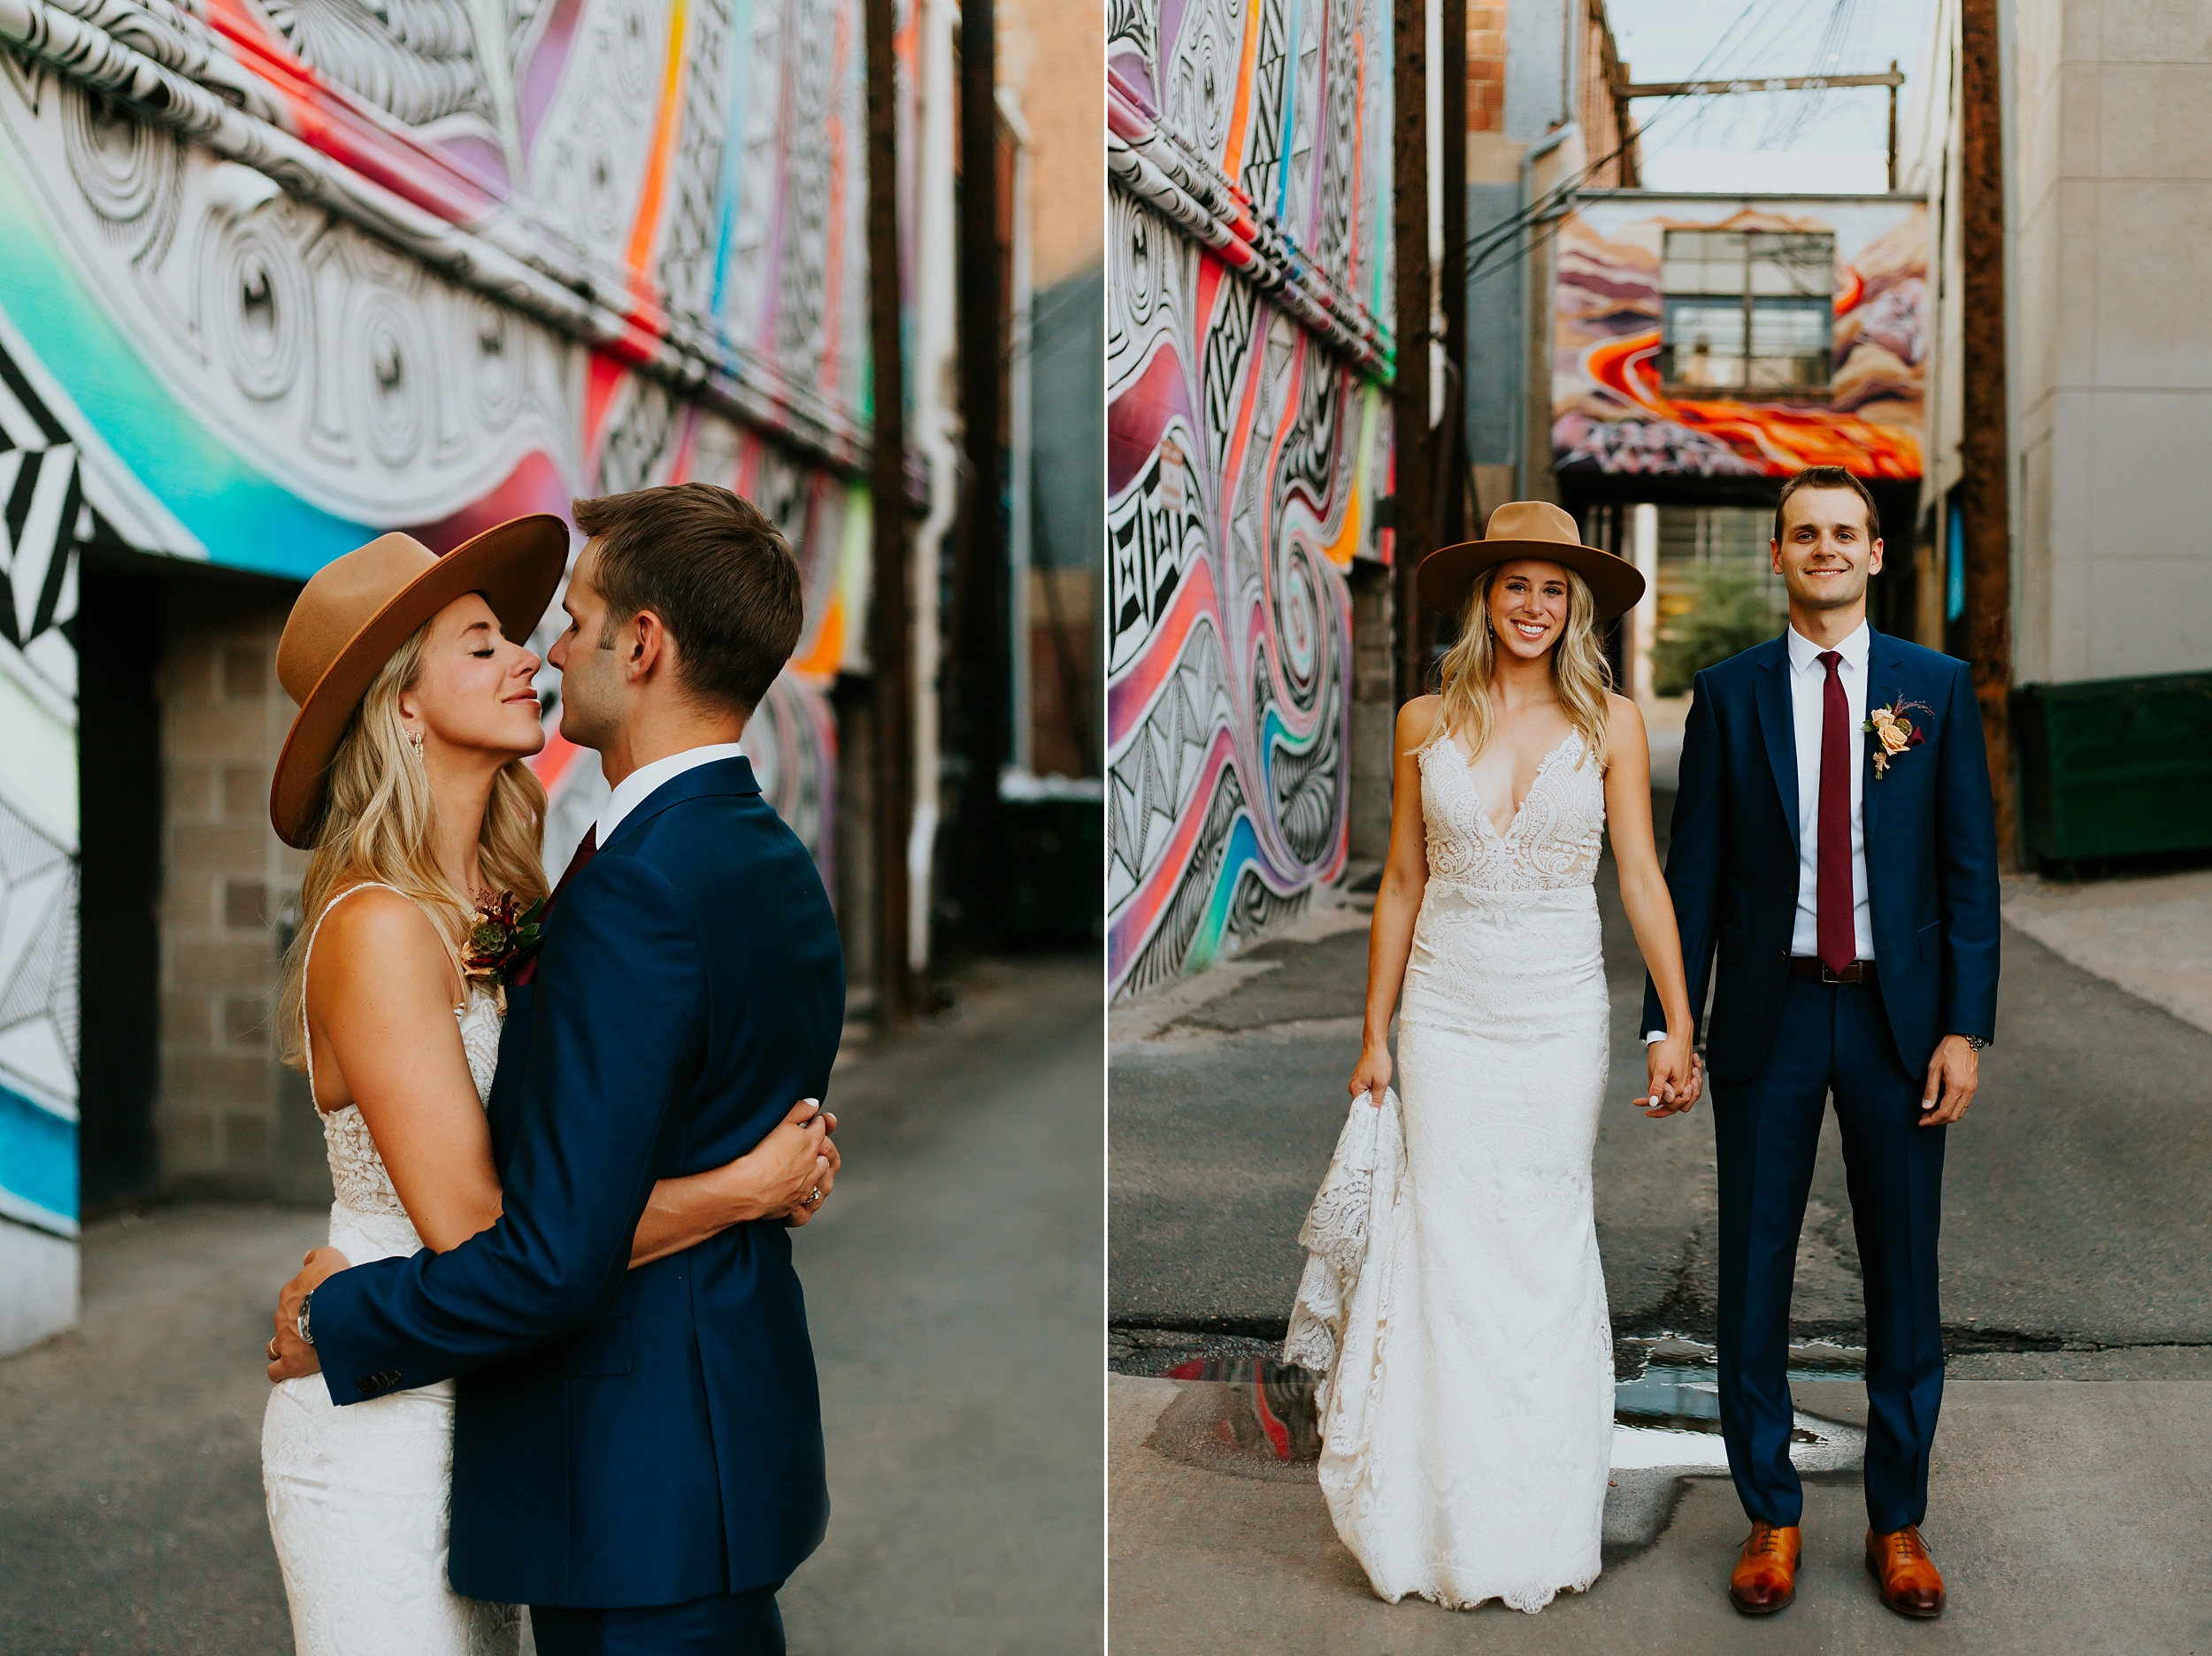 DowntownDenver_Colorado_Elopement_Anniversary_Session_Urban_Edit-29.jpg